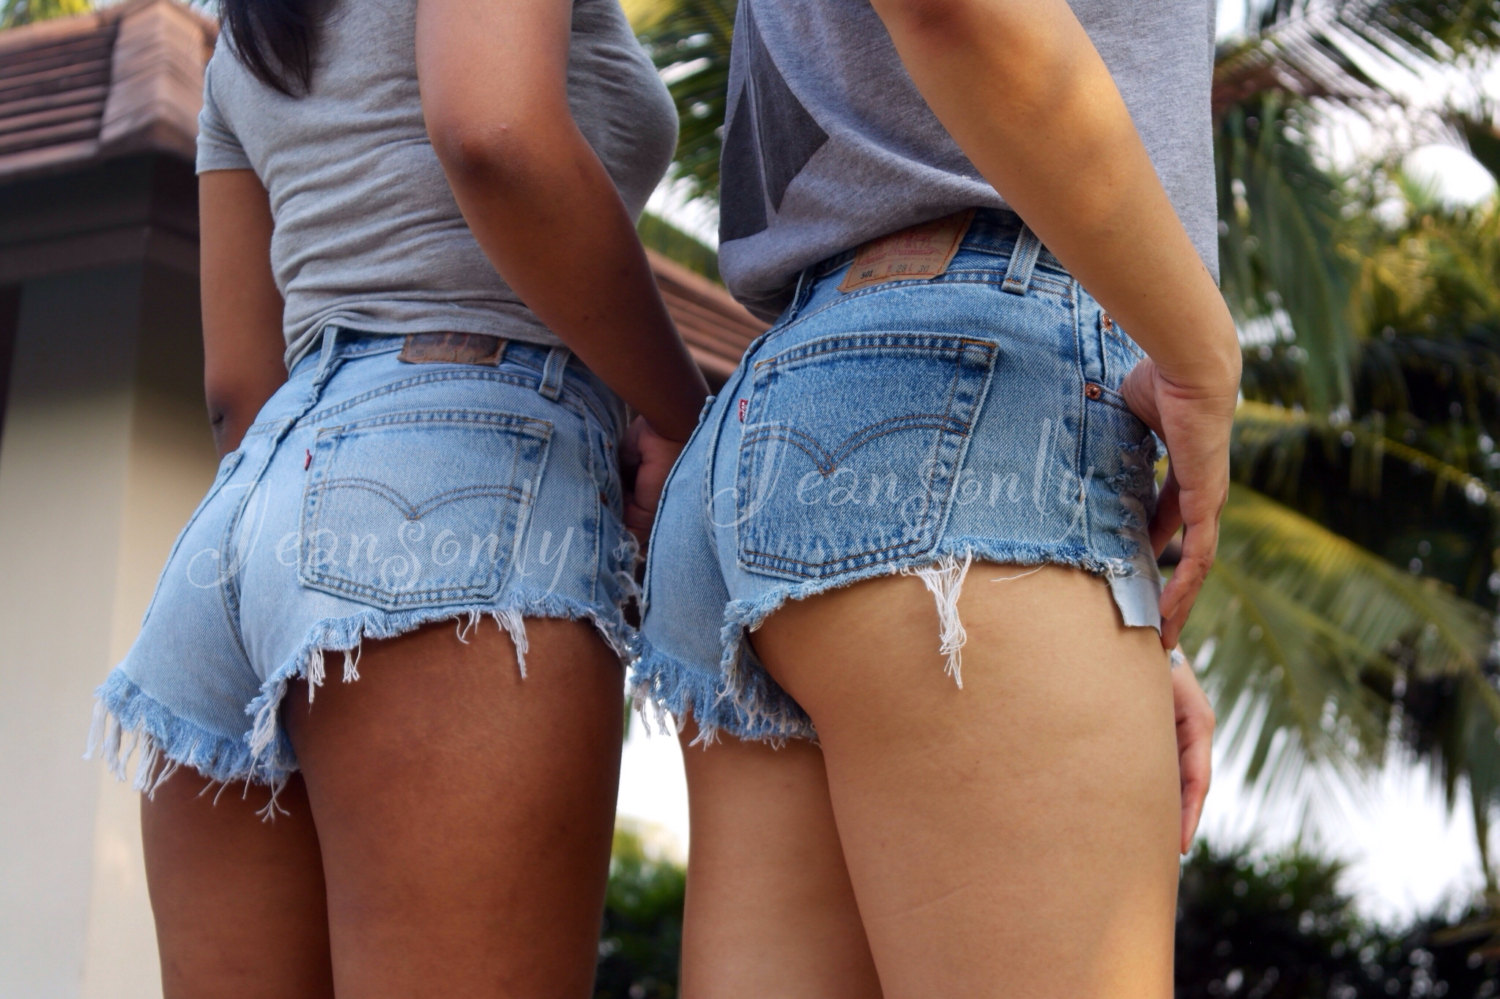 image Candid ass cheeks in tight textured short shorts